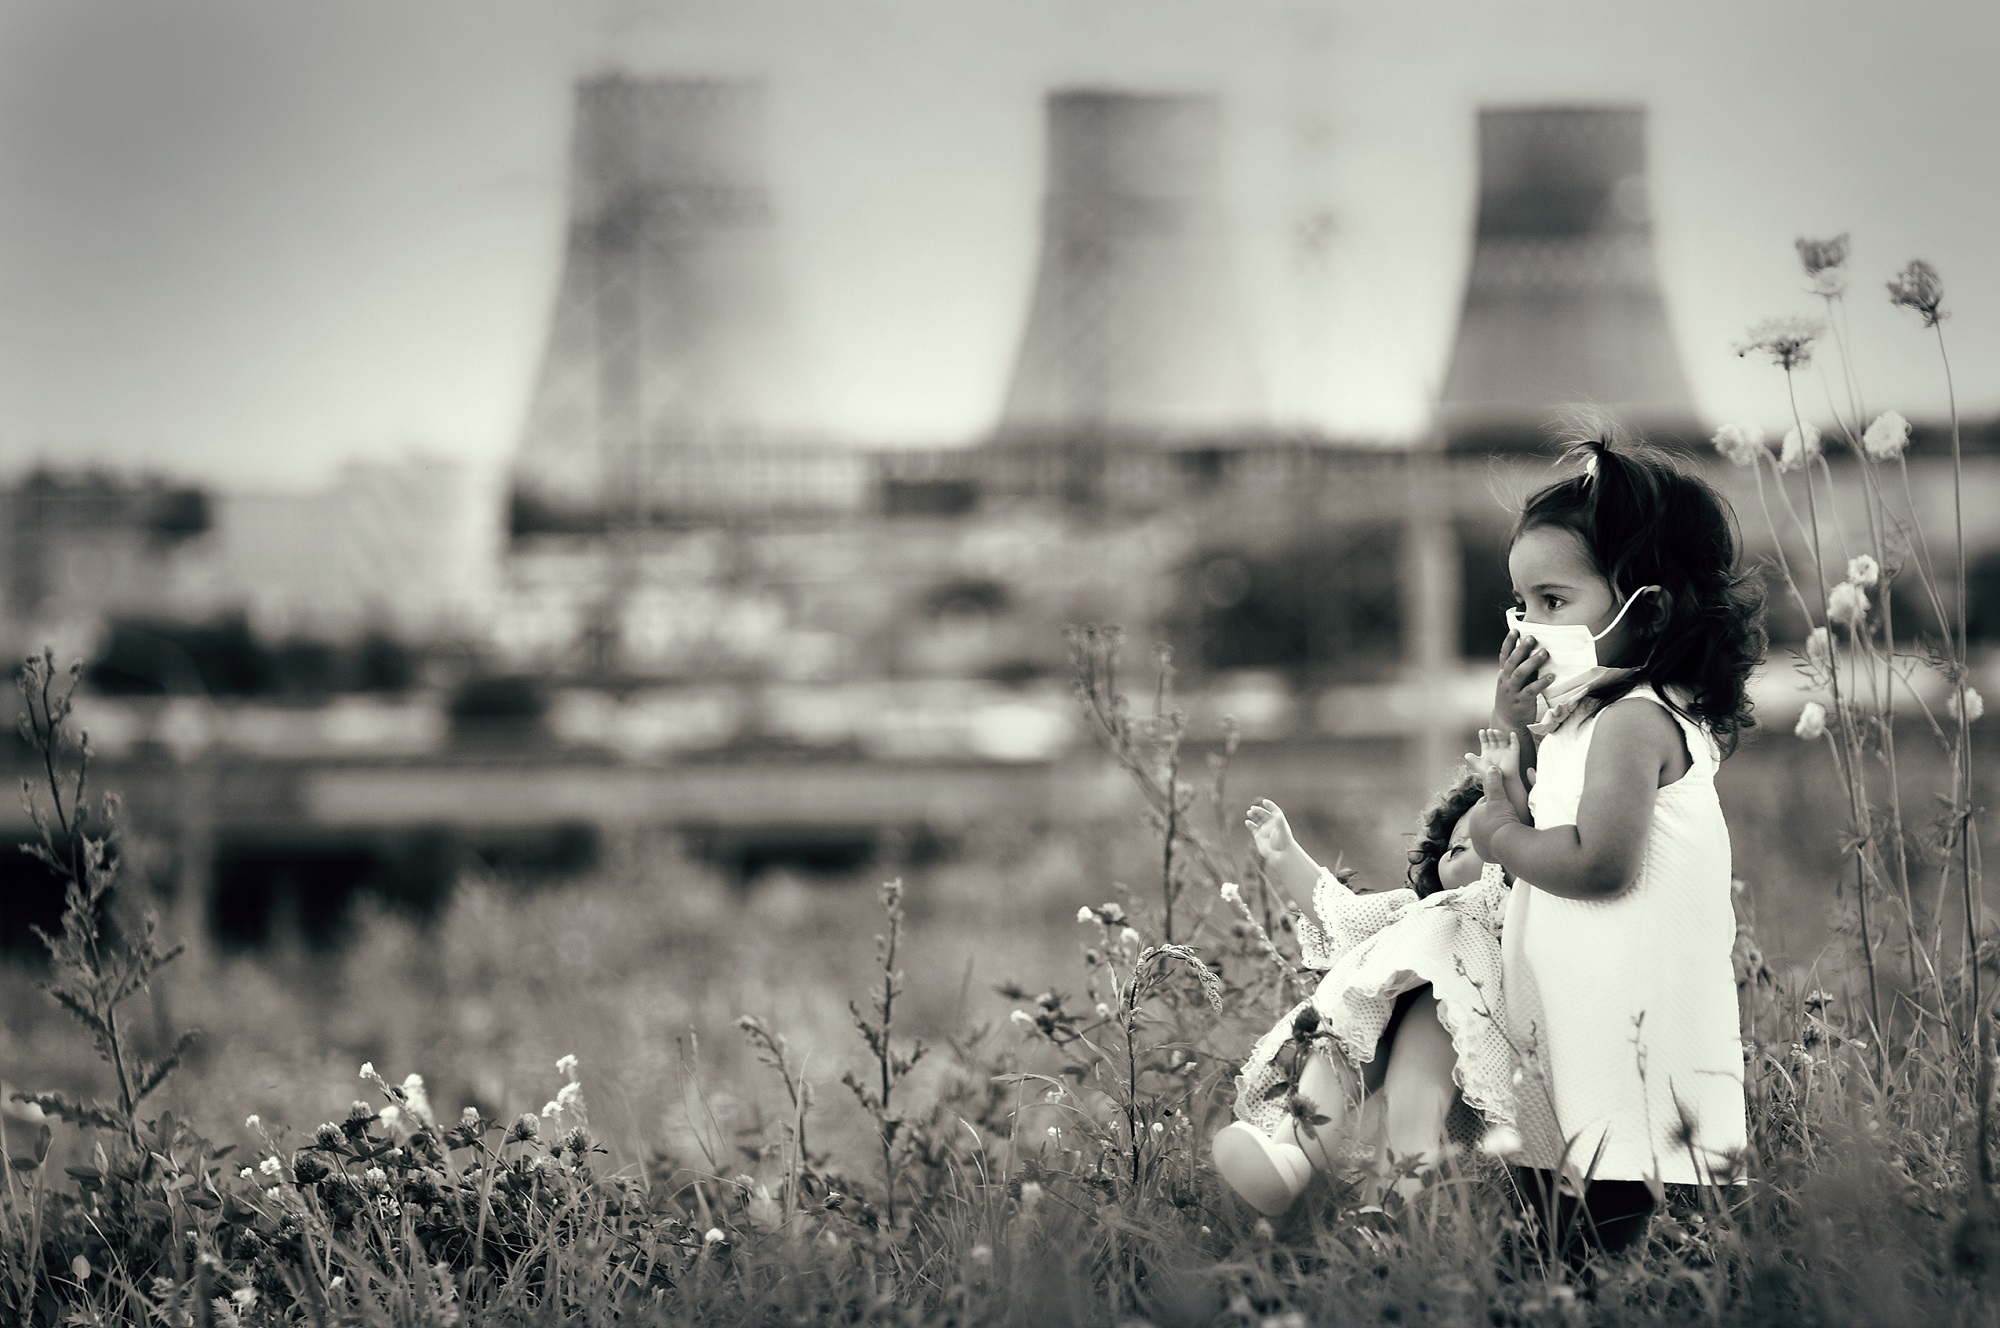 Young girl in respiratory mask holding doll in front of smokestacks